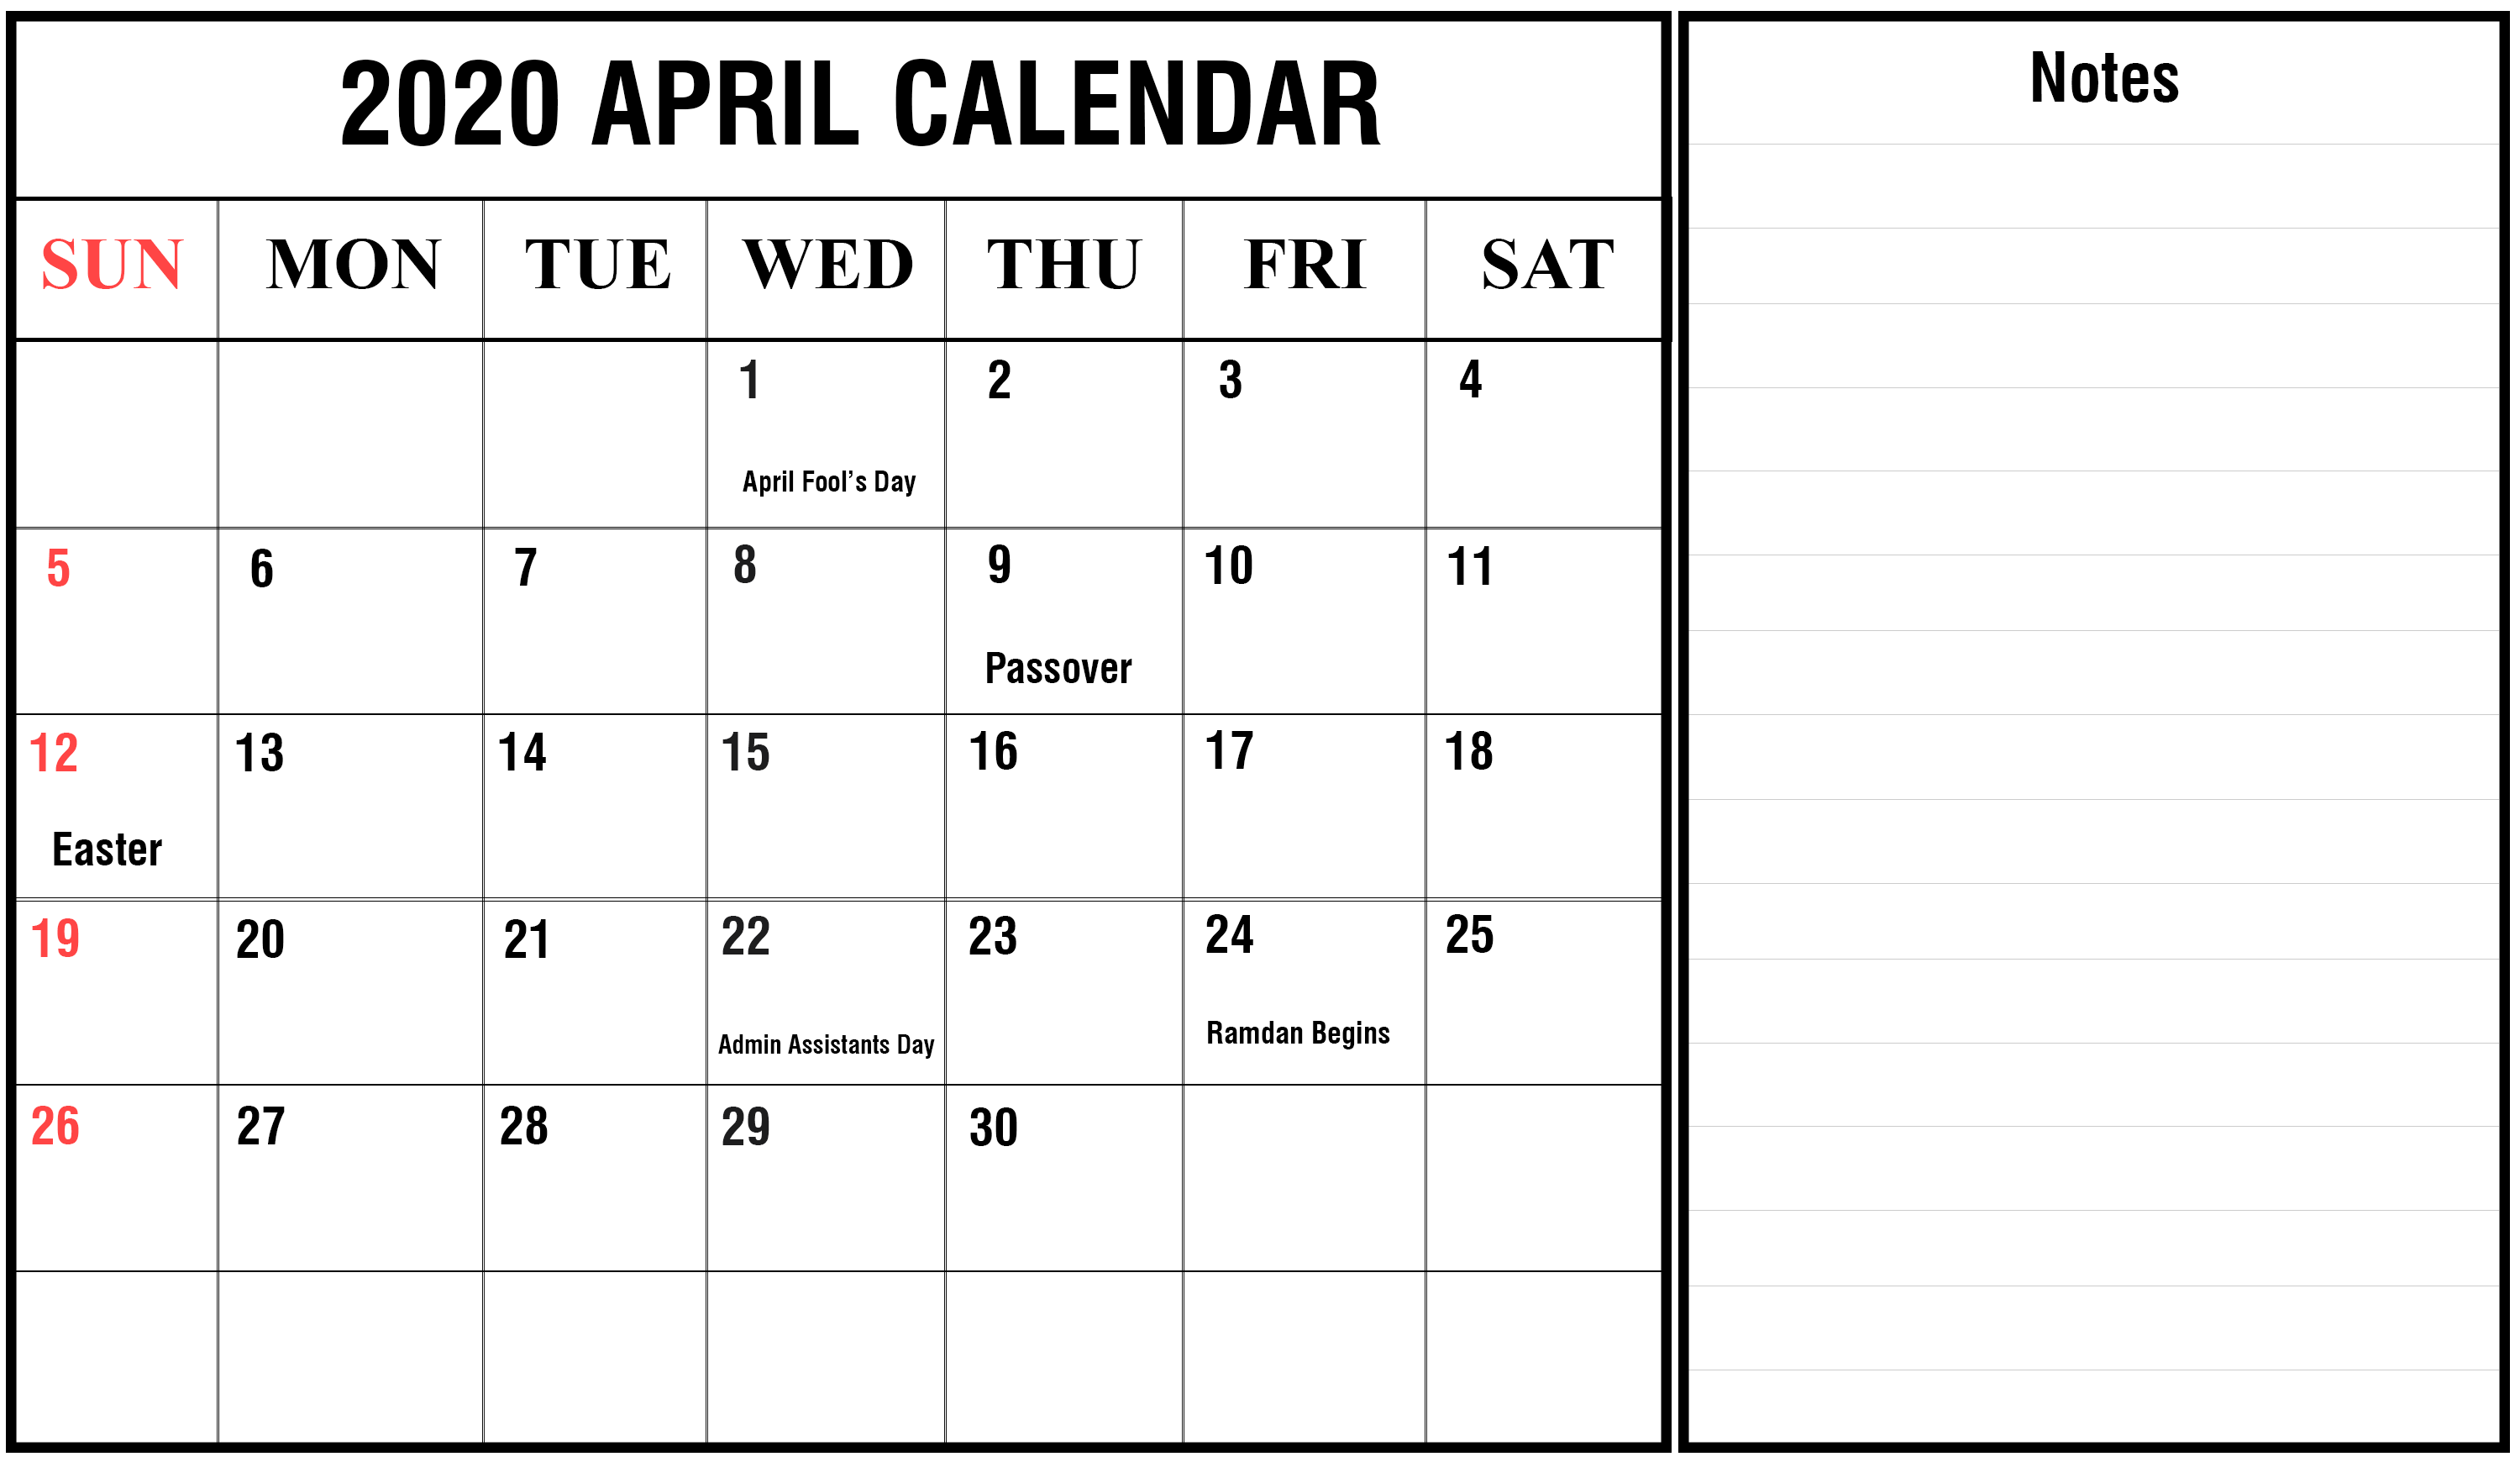 April 2020 Calendar With Notes Printable calendar template 3000x1740